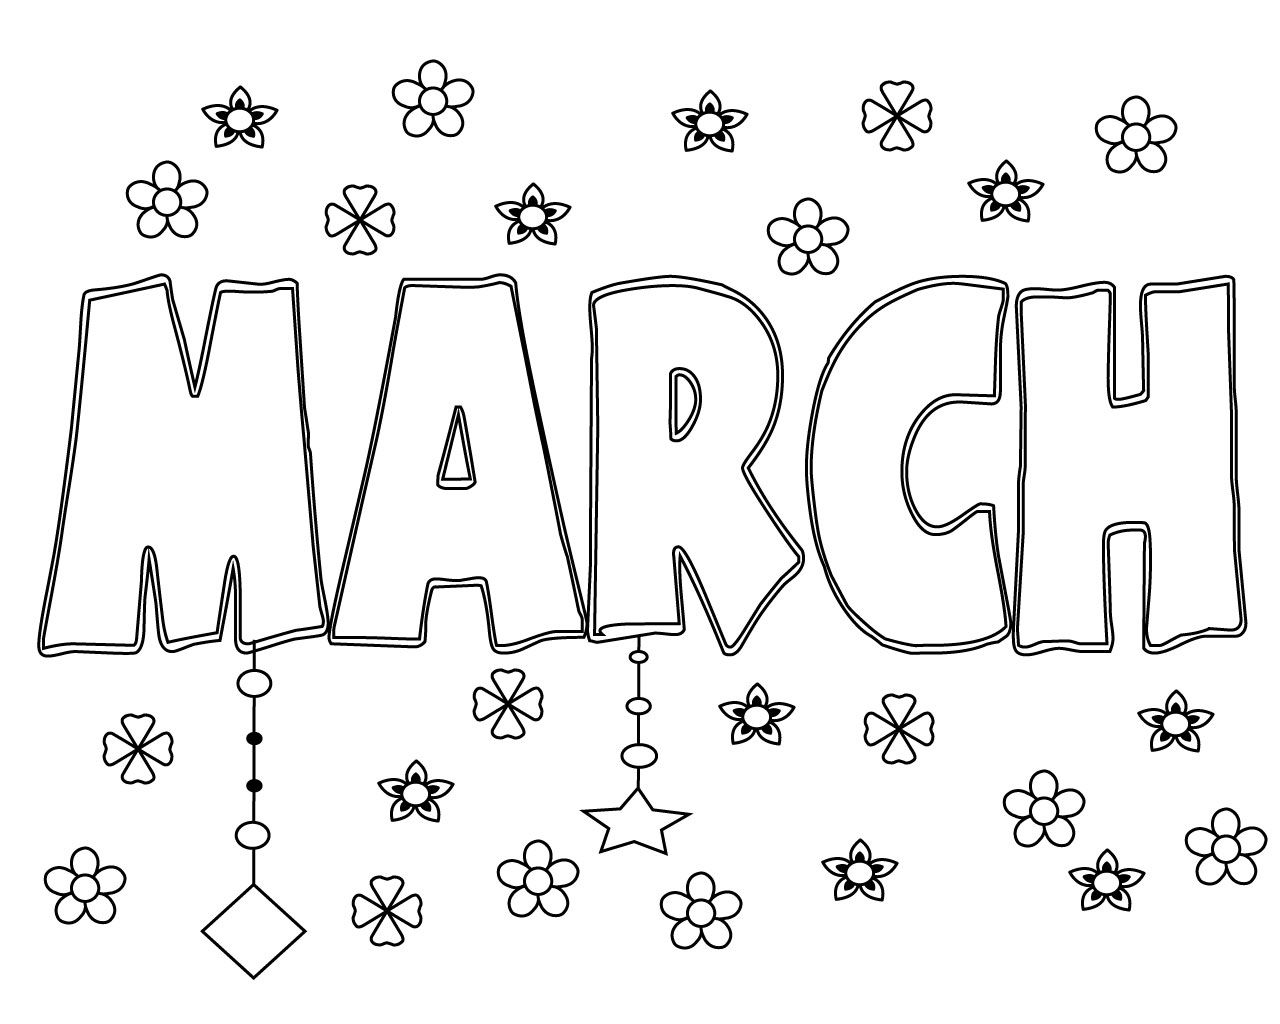 March Coloring Pages Coloring Pages Coloring Pages For Kids Coloring Pages To Print